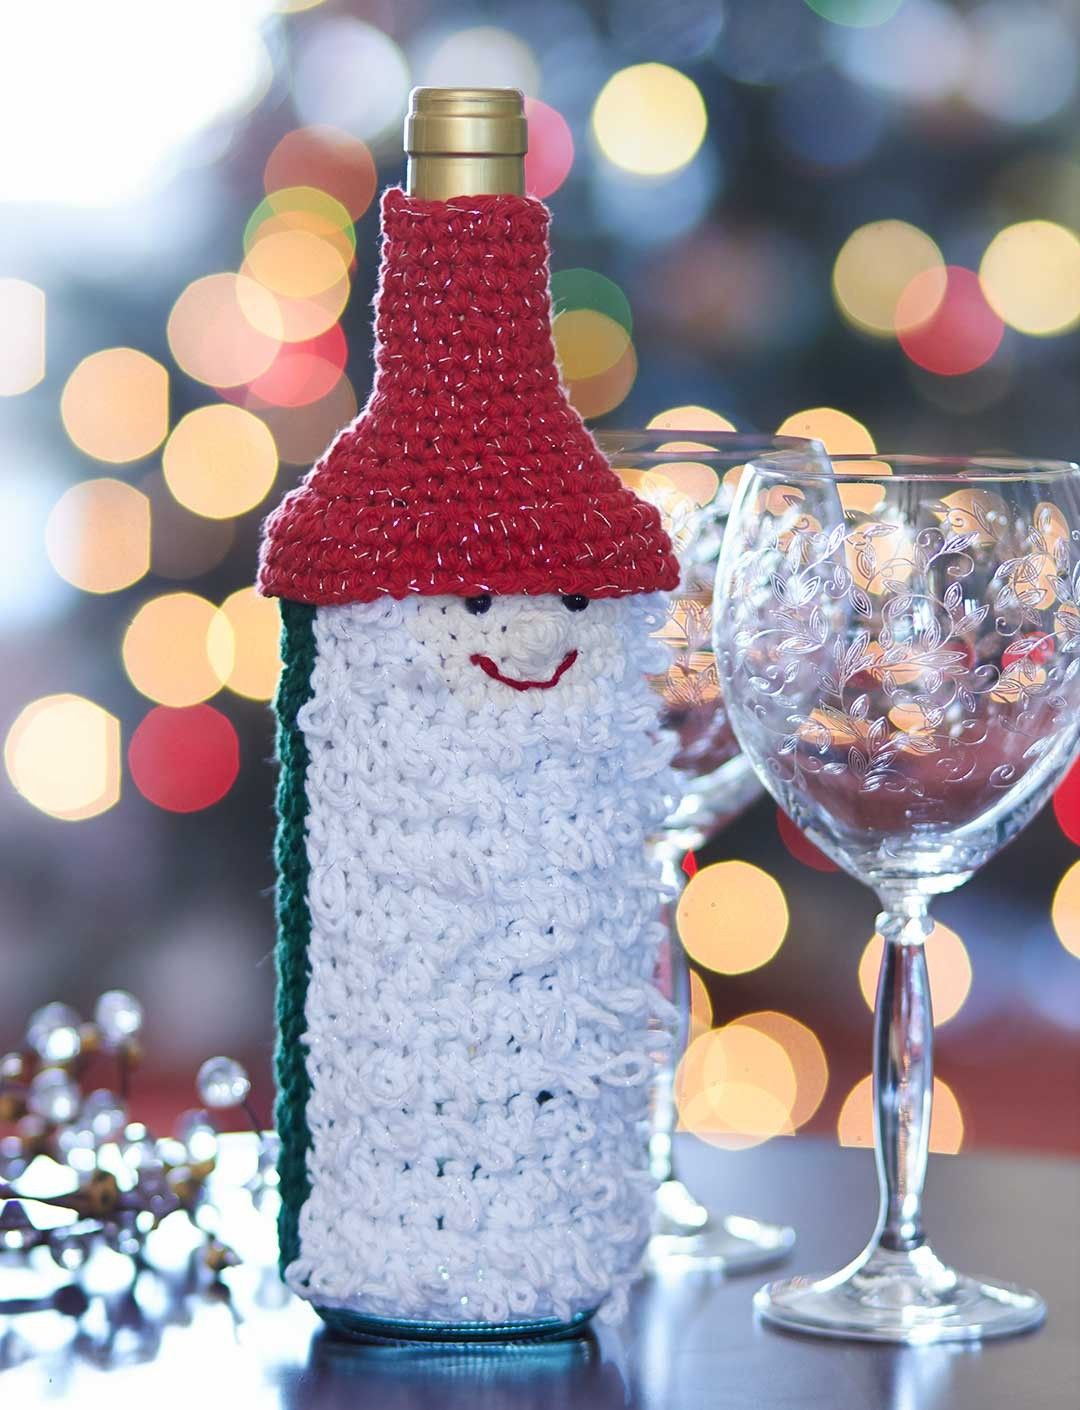 Yarnspirations Com Bernat Gnome For The Holidays Wine Bottle Cozy Patterns Yarnspirations Holiday Wine Bottles Bottle Cozies Christmas Crochet Patterns